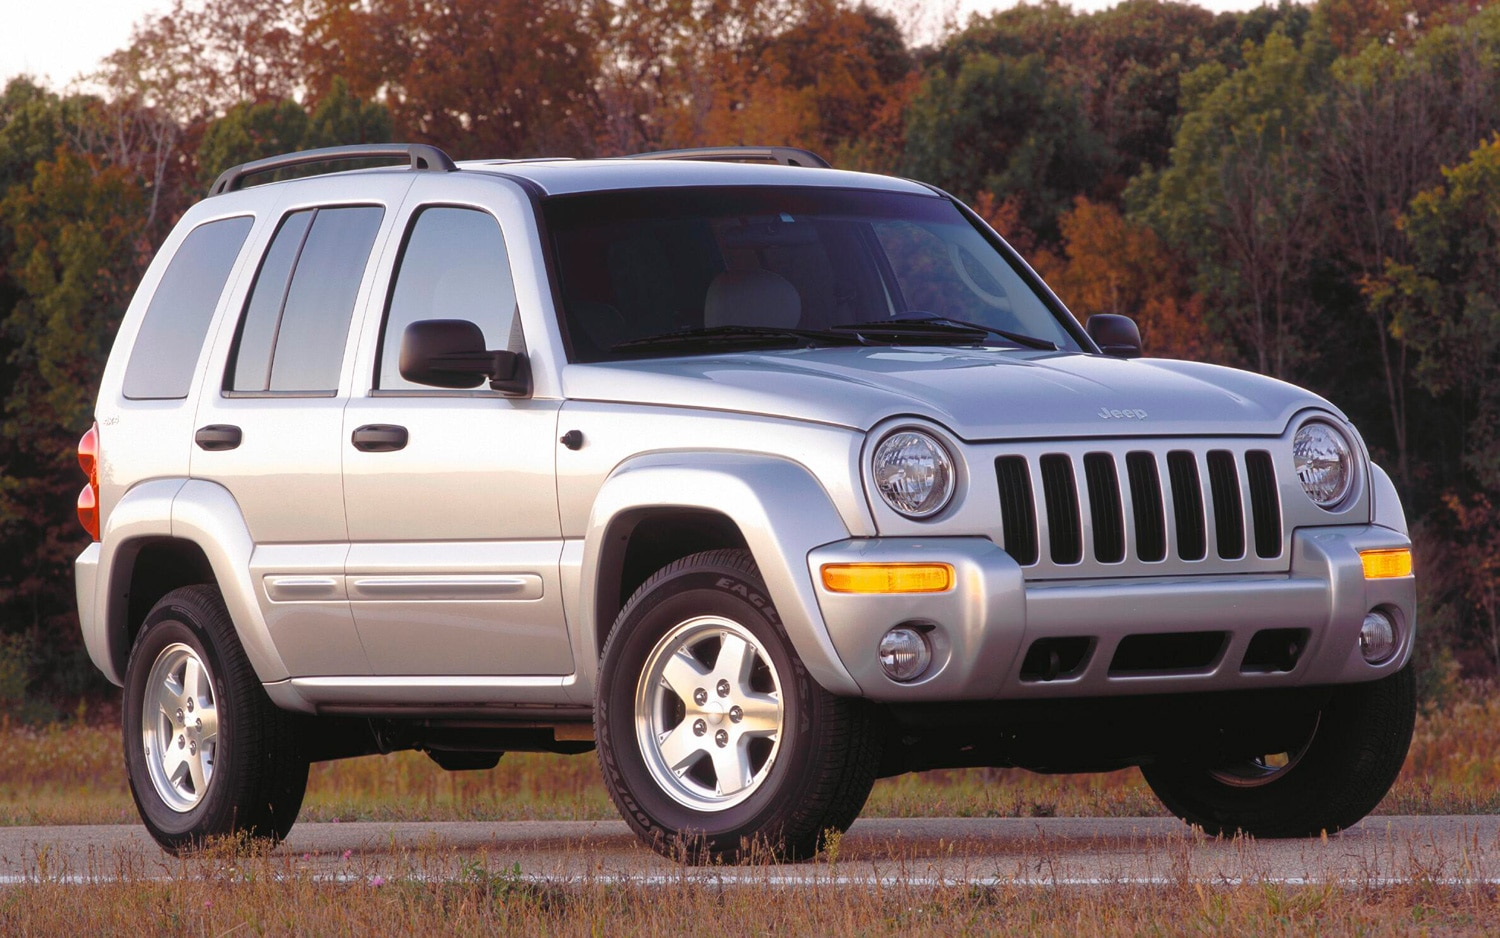 recall central jeep recalls 745 000 grand cherokee. Black Bedroom Furniture Sets. Home Design Ideas